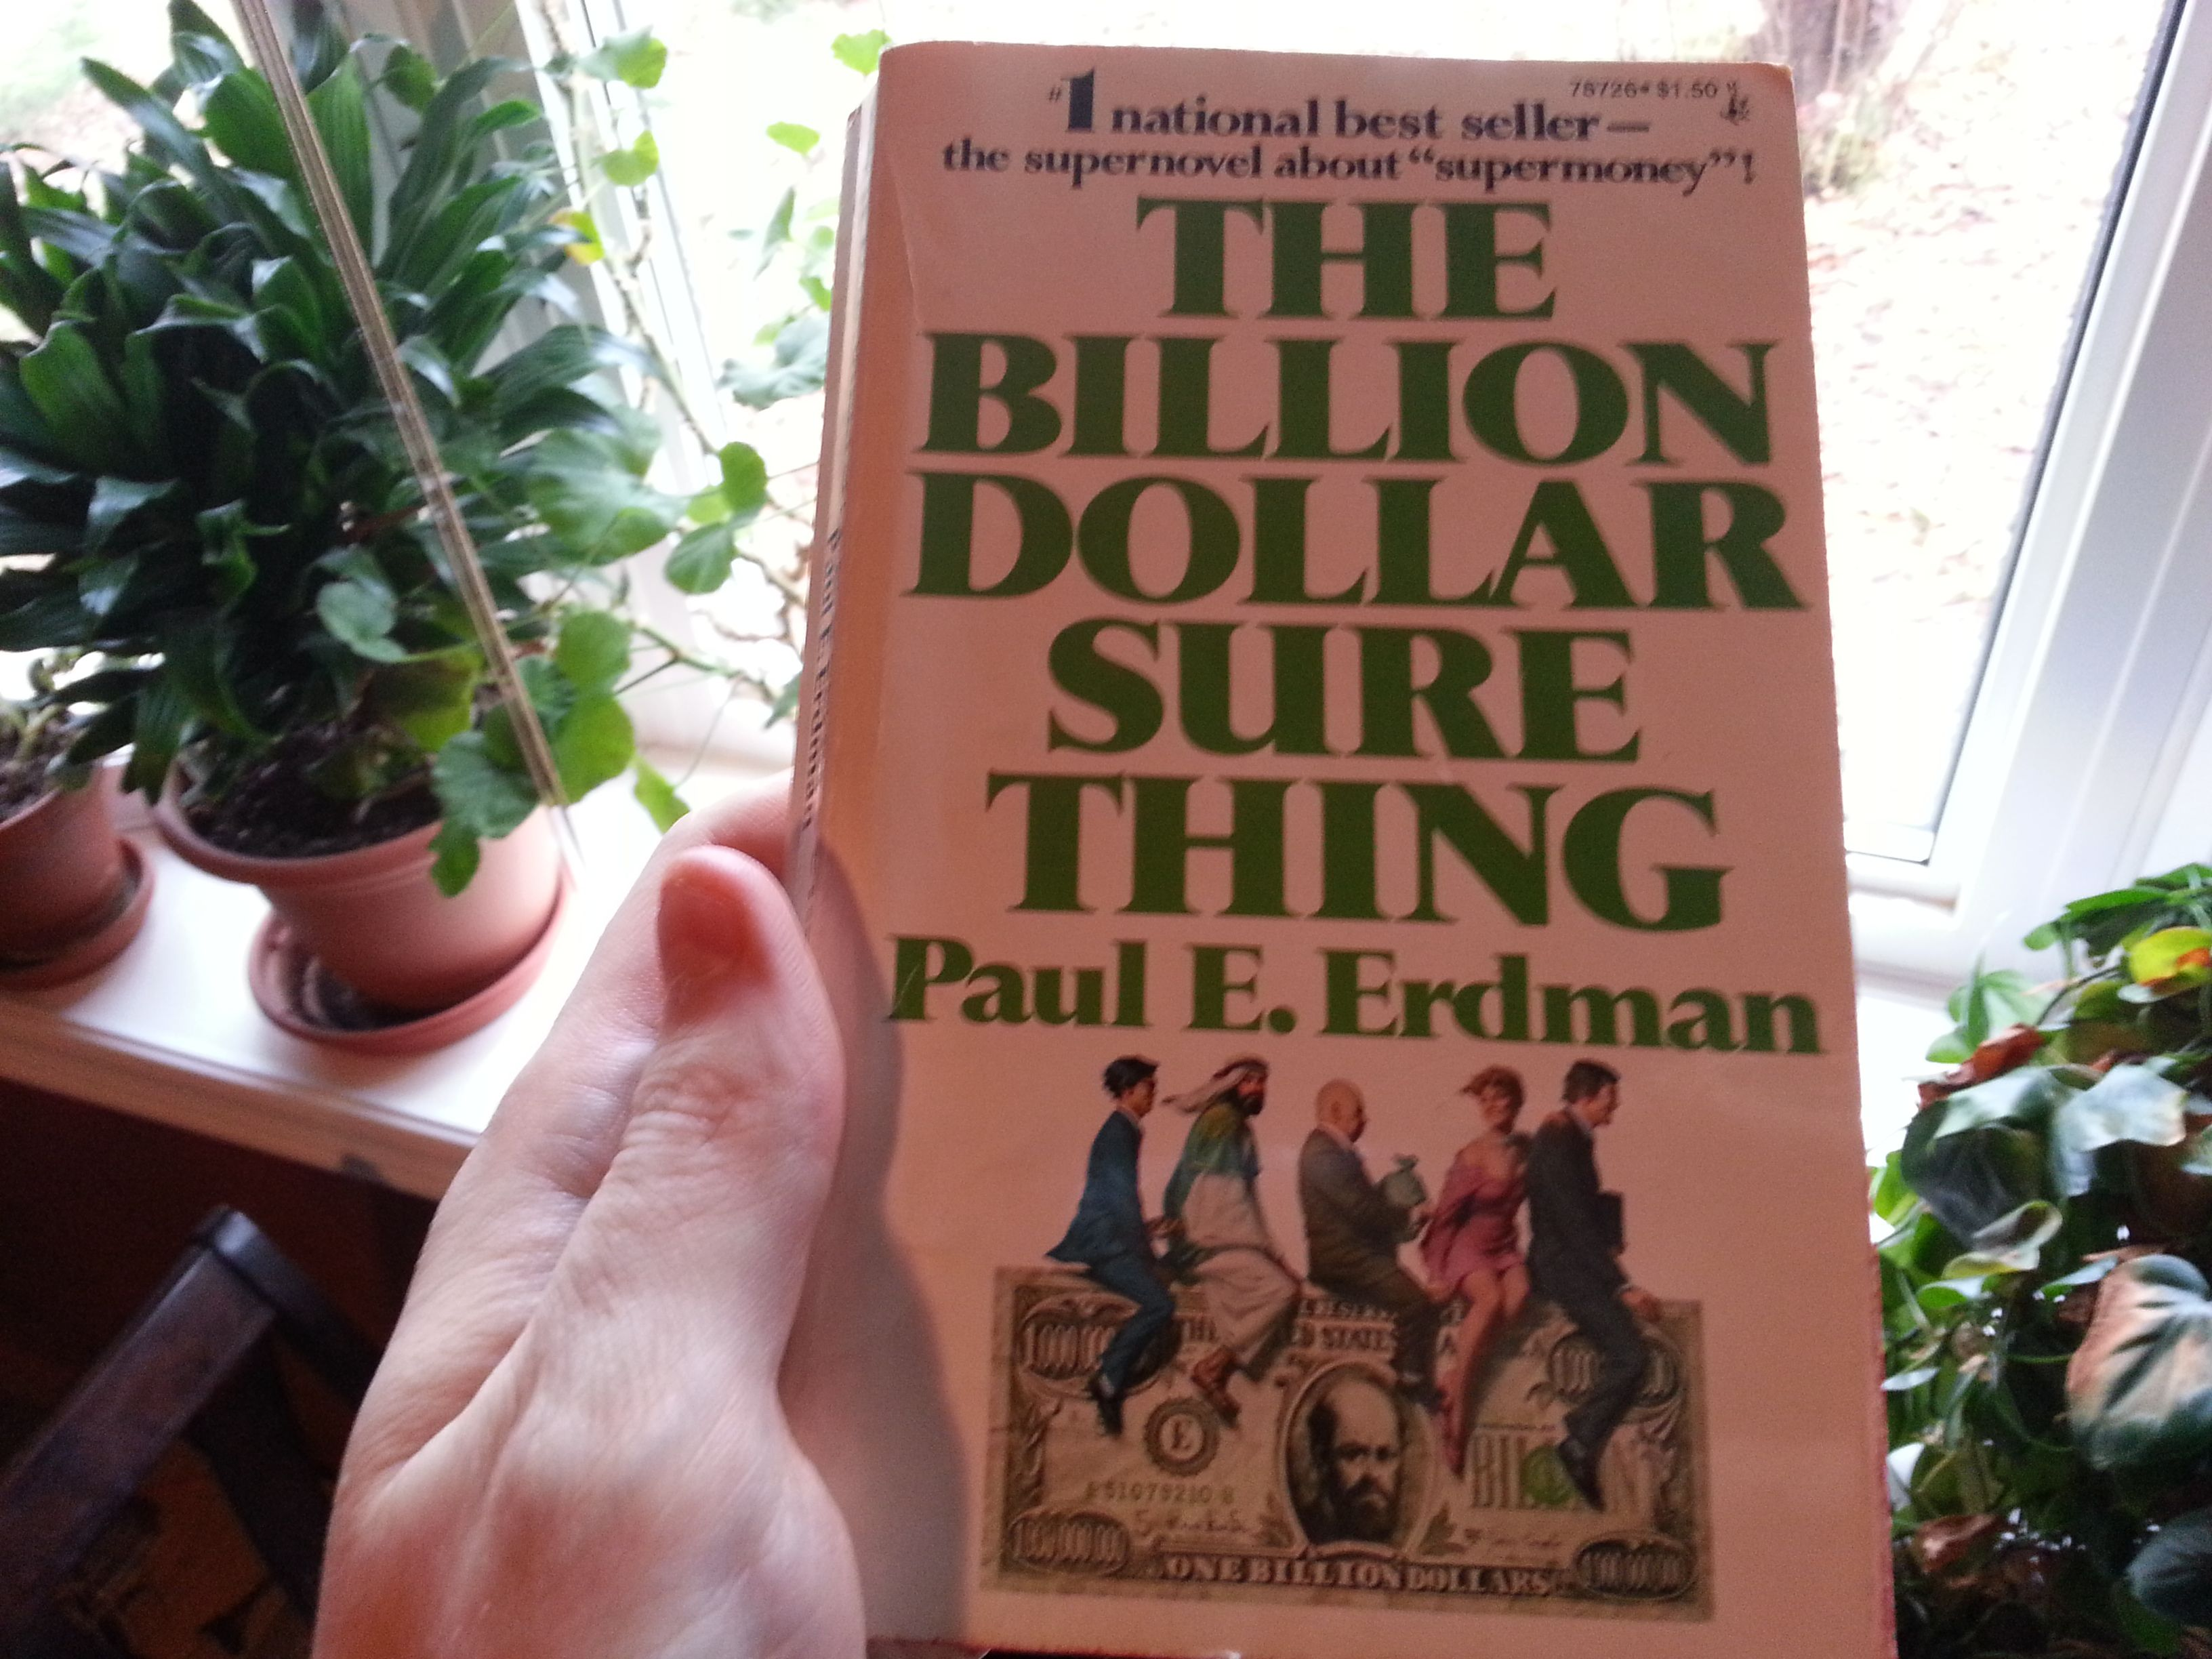 The Billion Dollar Sure Thing by Paul E. Erdman